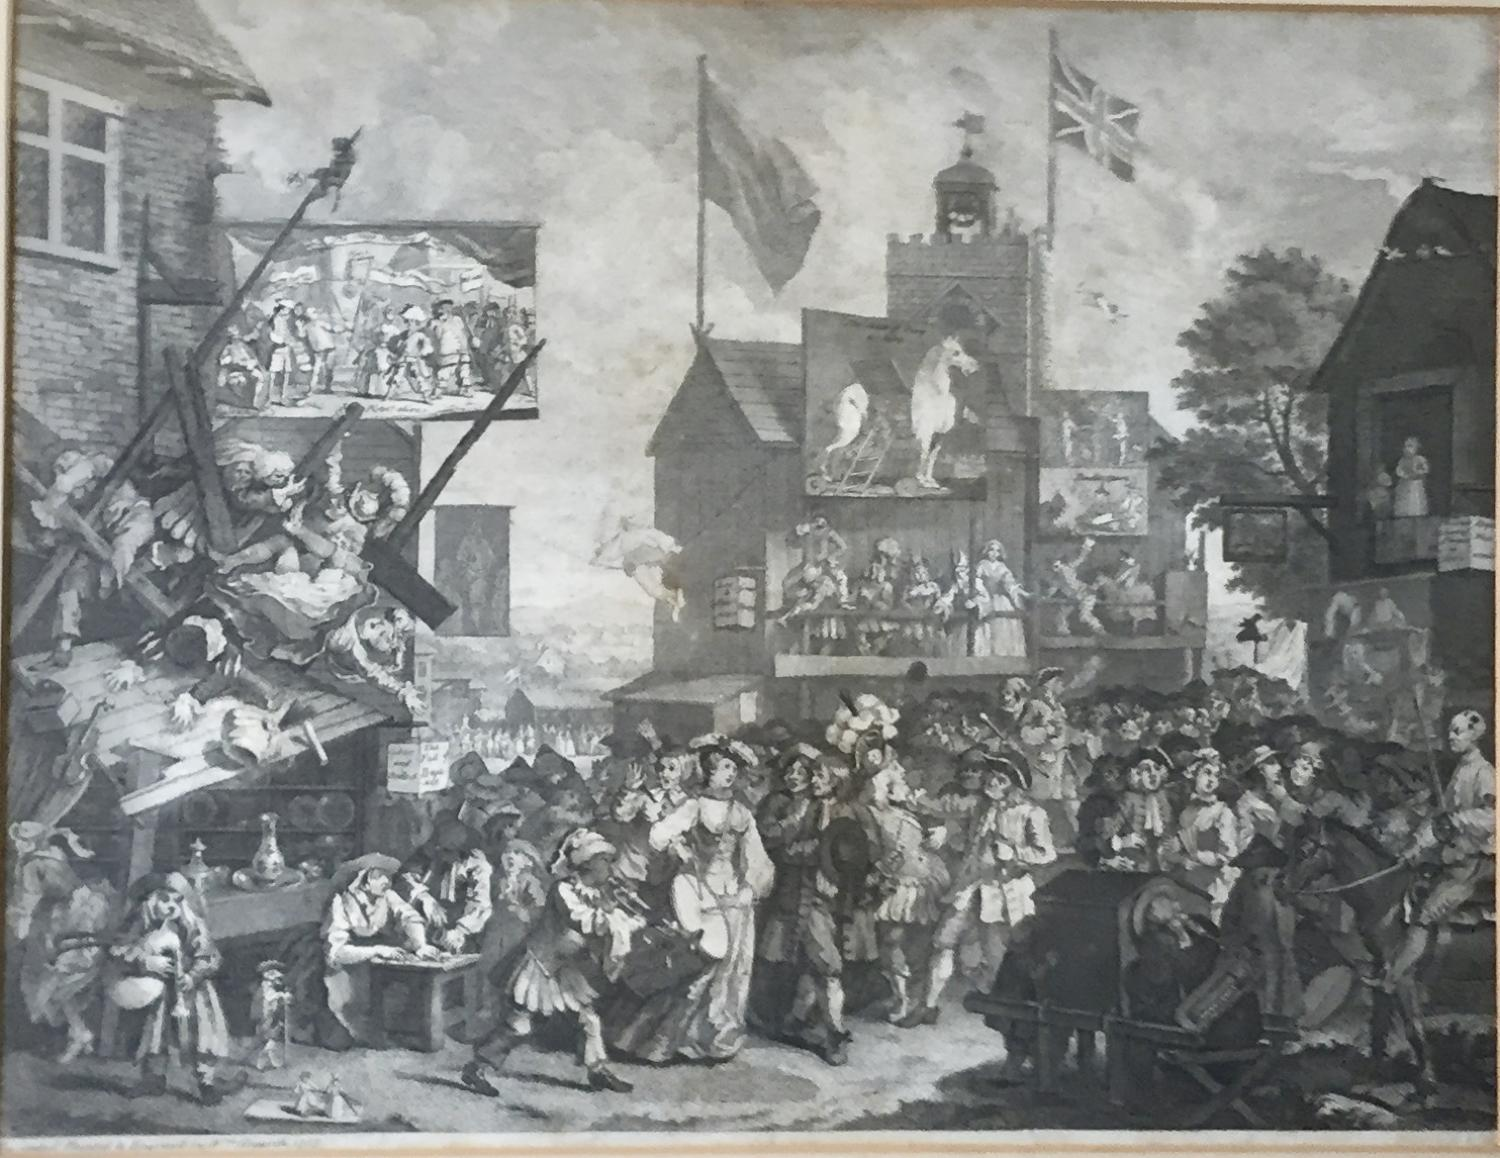 William Hogarth Engraving of Southwark Fair, 1733